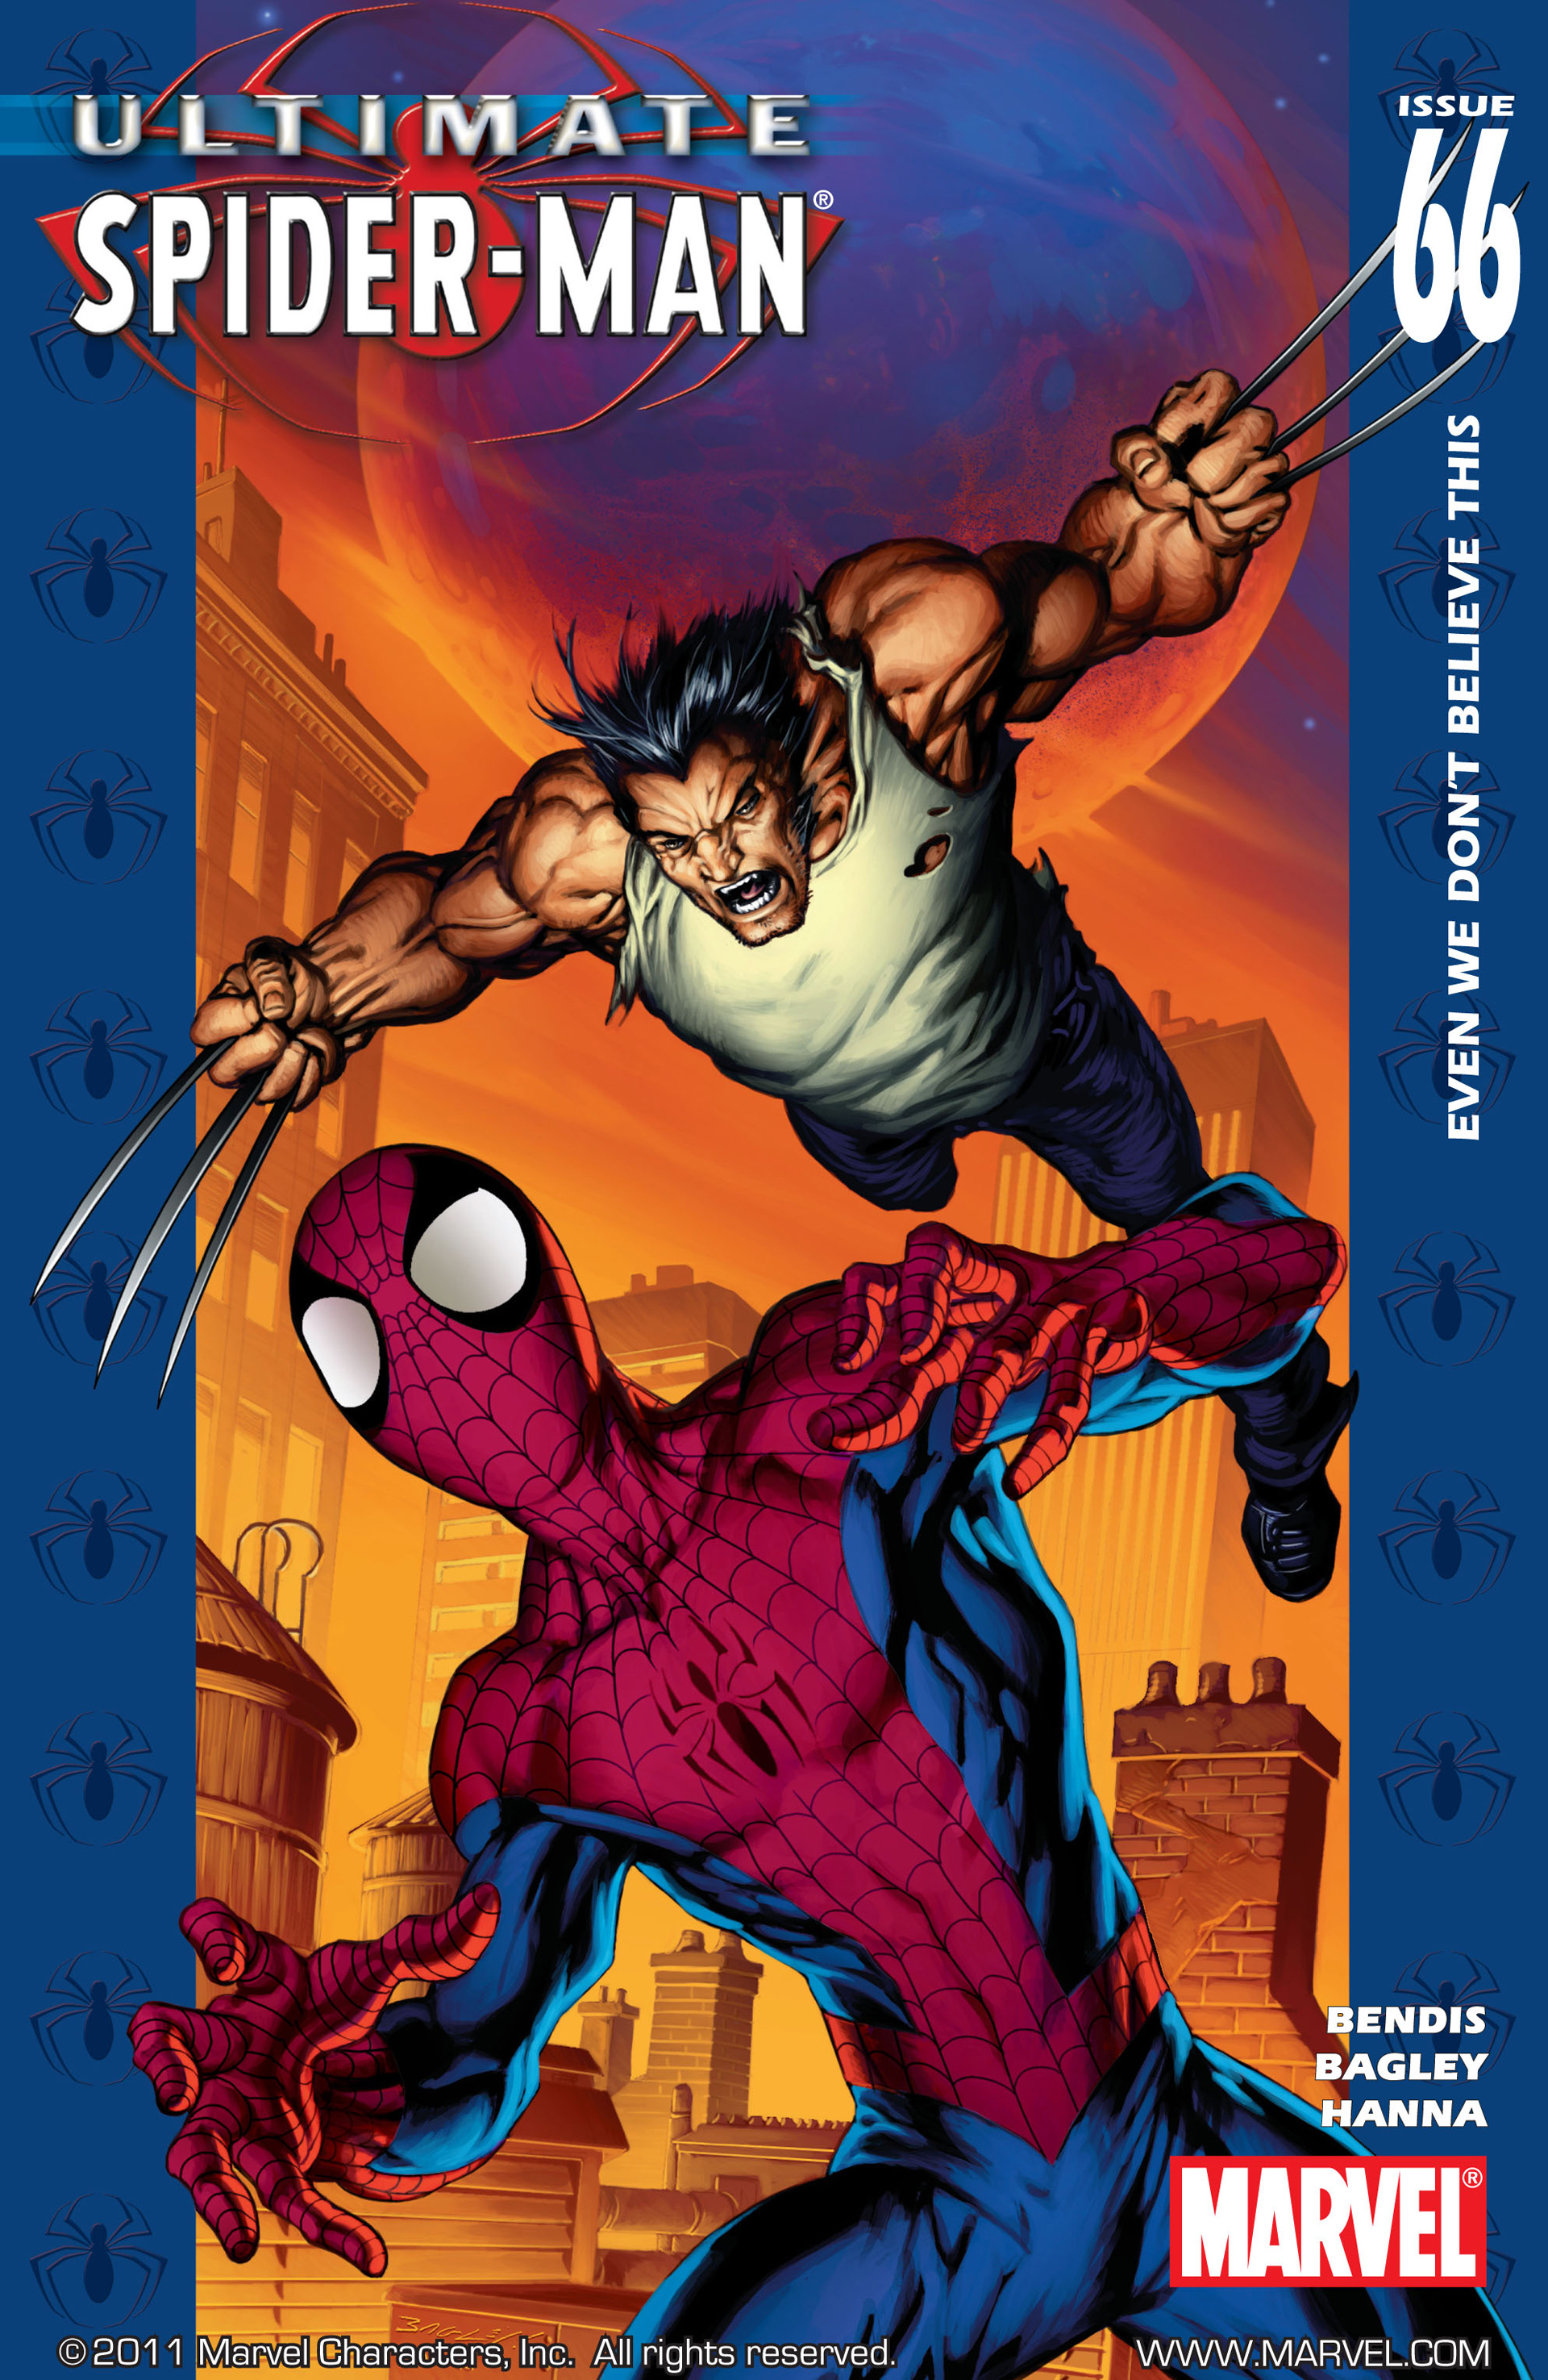 Ultimate Spider-Man (2000) 66 Page 1